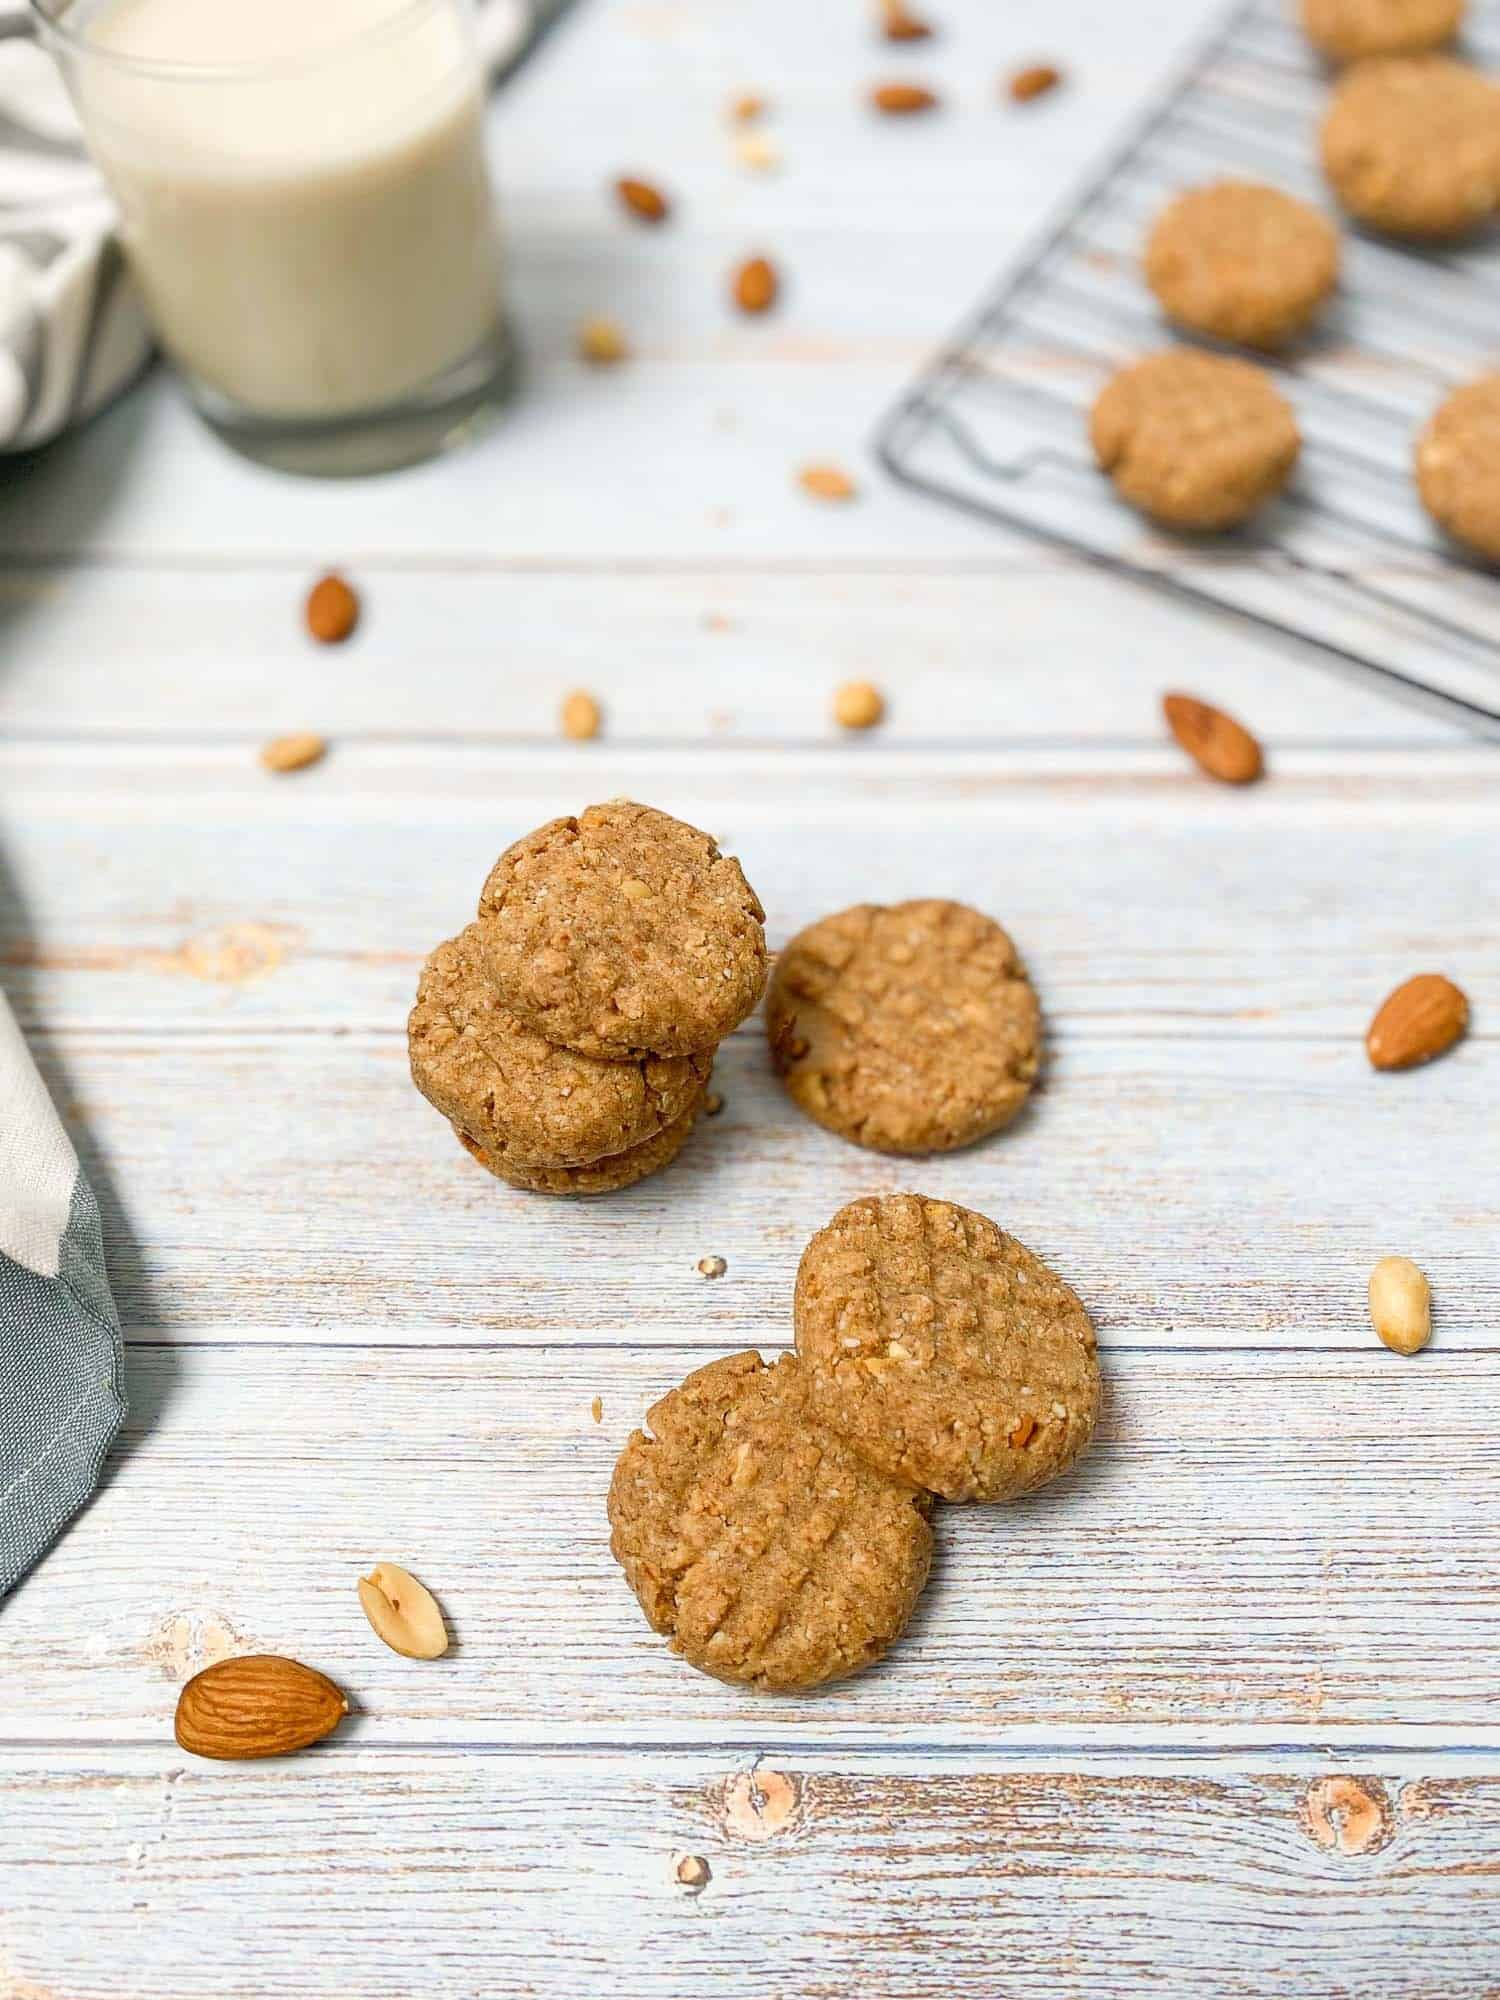 peanut butter almond cookies scattered on deck with peanuts and almonds around them